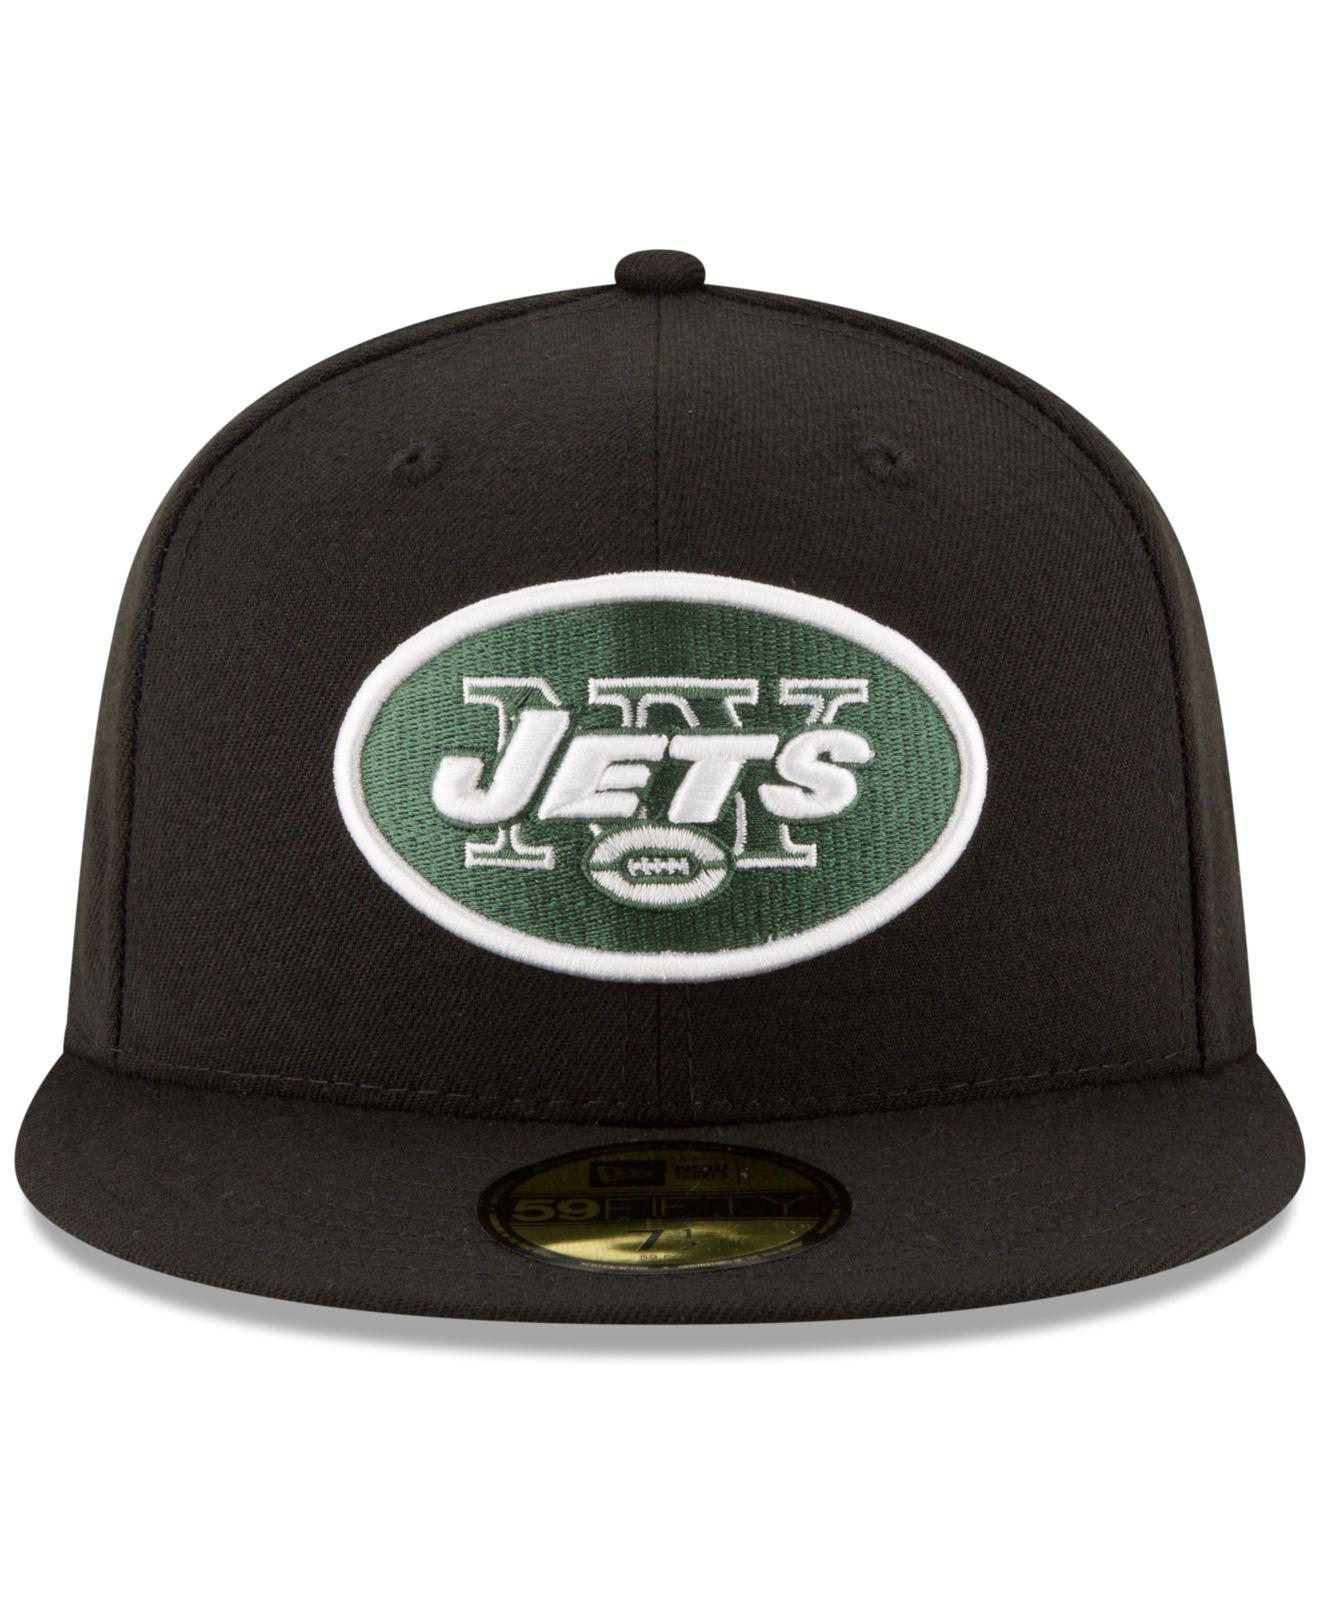 Lyst - Ktz New York Jets Team Basic 59fifty Cap in Black for Men 94f496a173ee